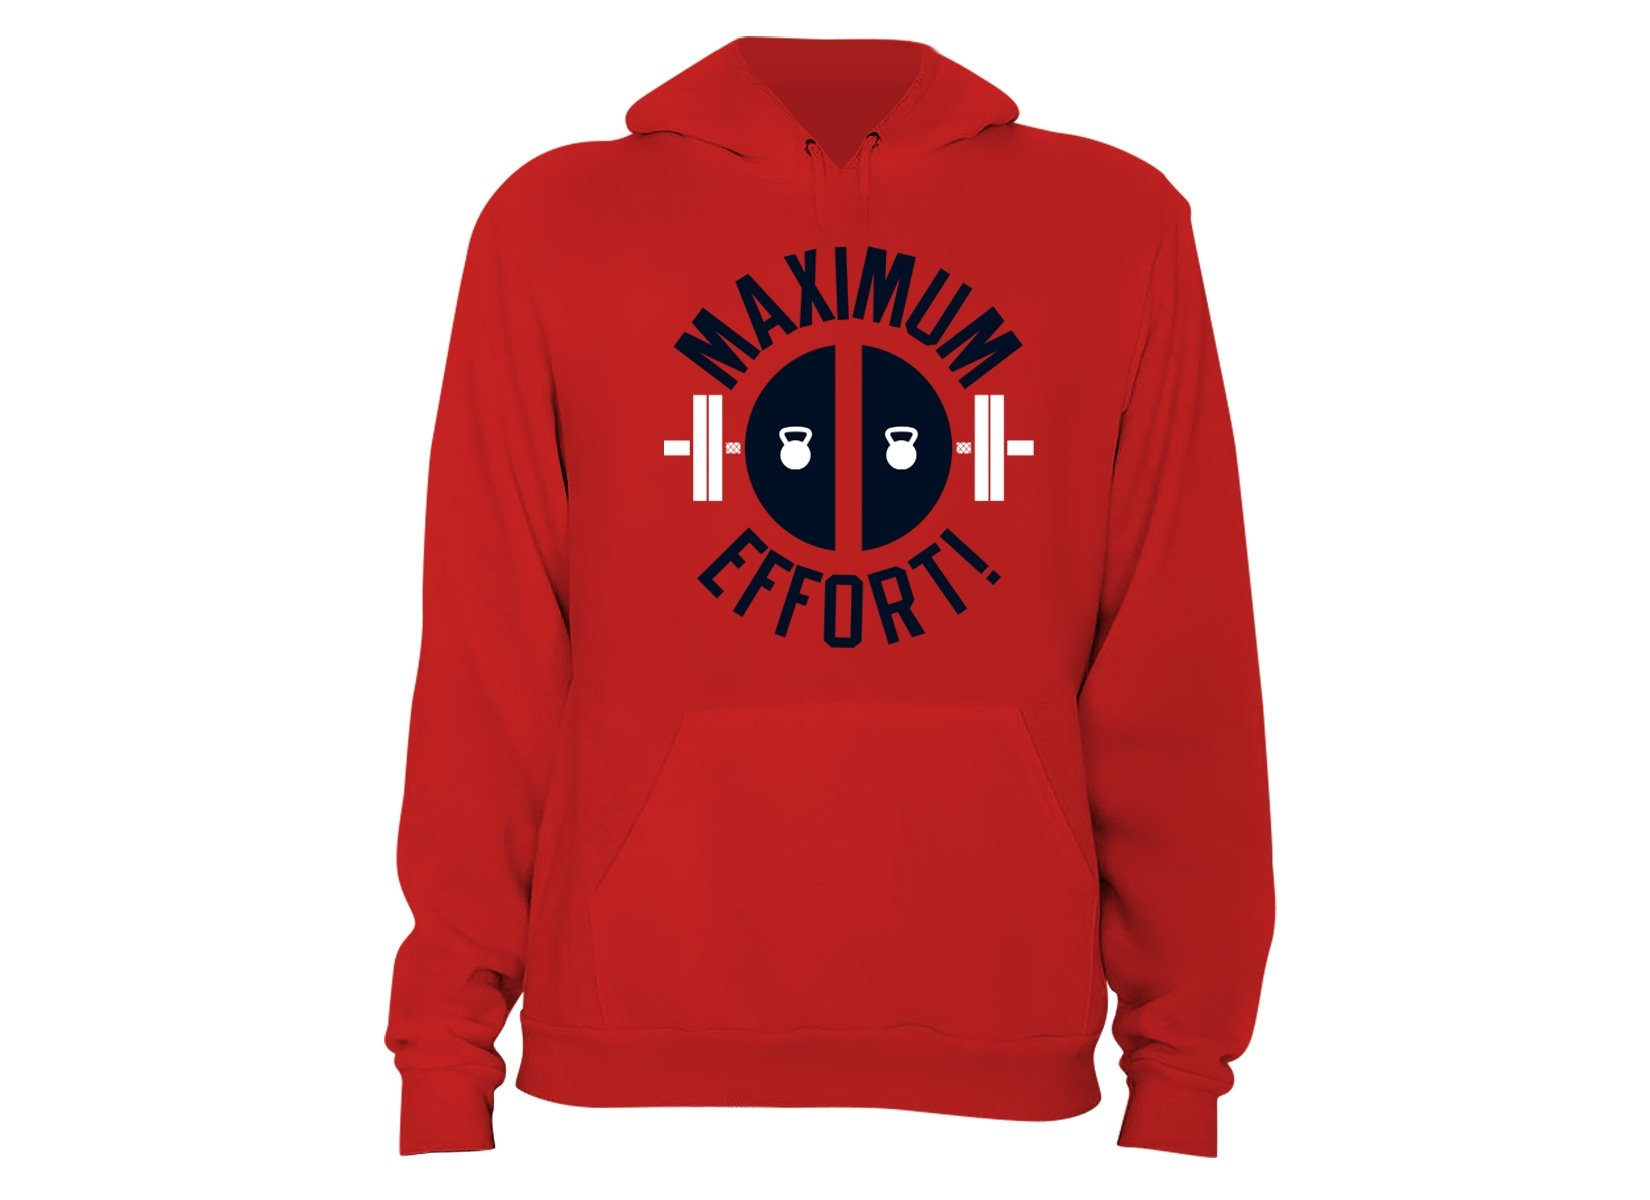 Maximum Effort! on Hoodie